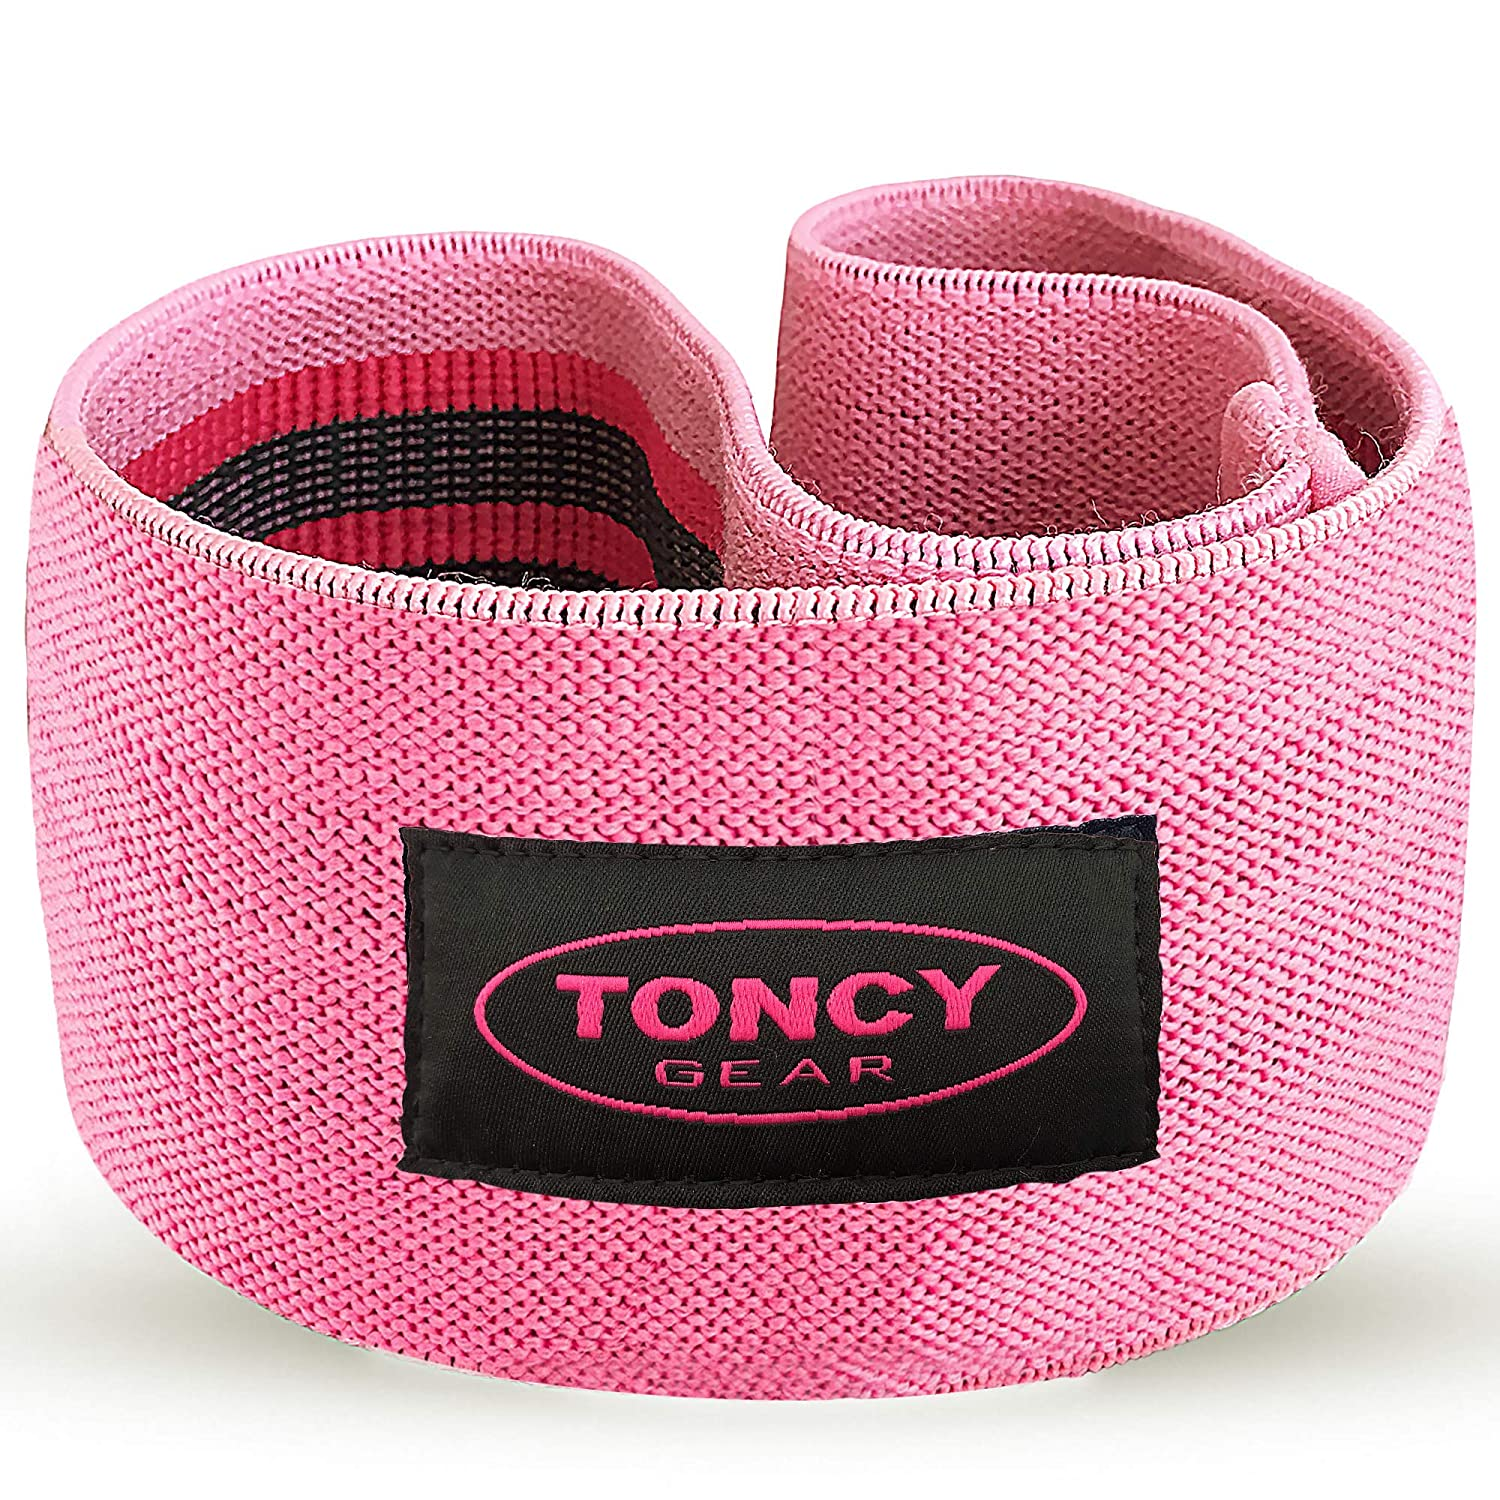 Toncy Gear Hip Resistance Circle Booty Bands - That Fires Up a Flawless Butt Hump | Soft & Thick Cloth Fabric Glute Band Loop for Warm Ups, Side Walk, Squat | Non Roll Design With Bonus Carry Bag